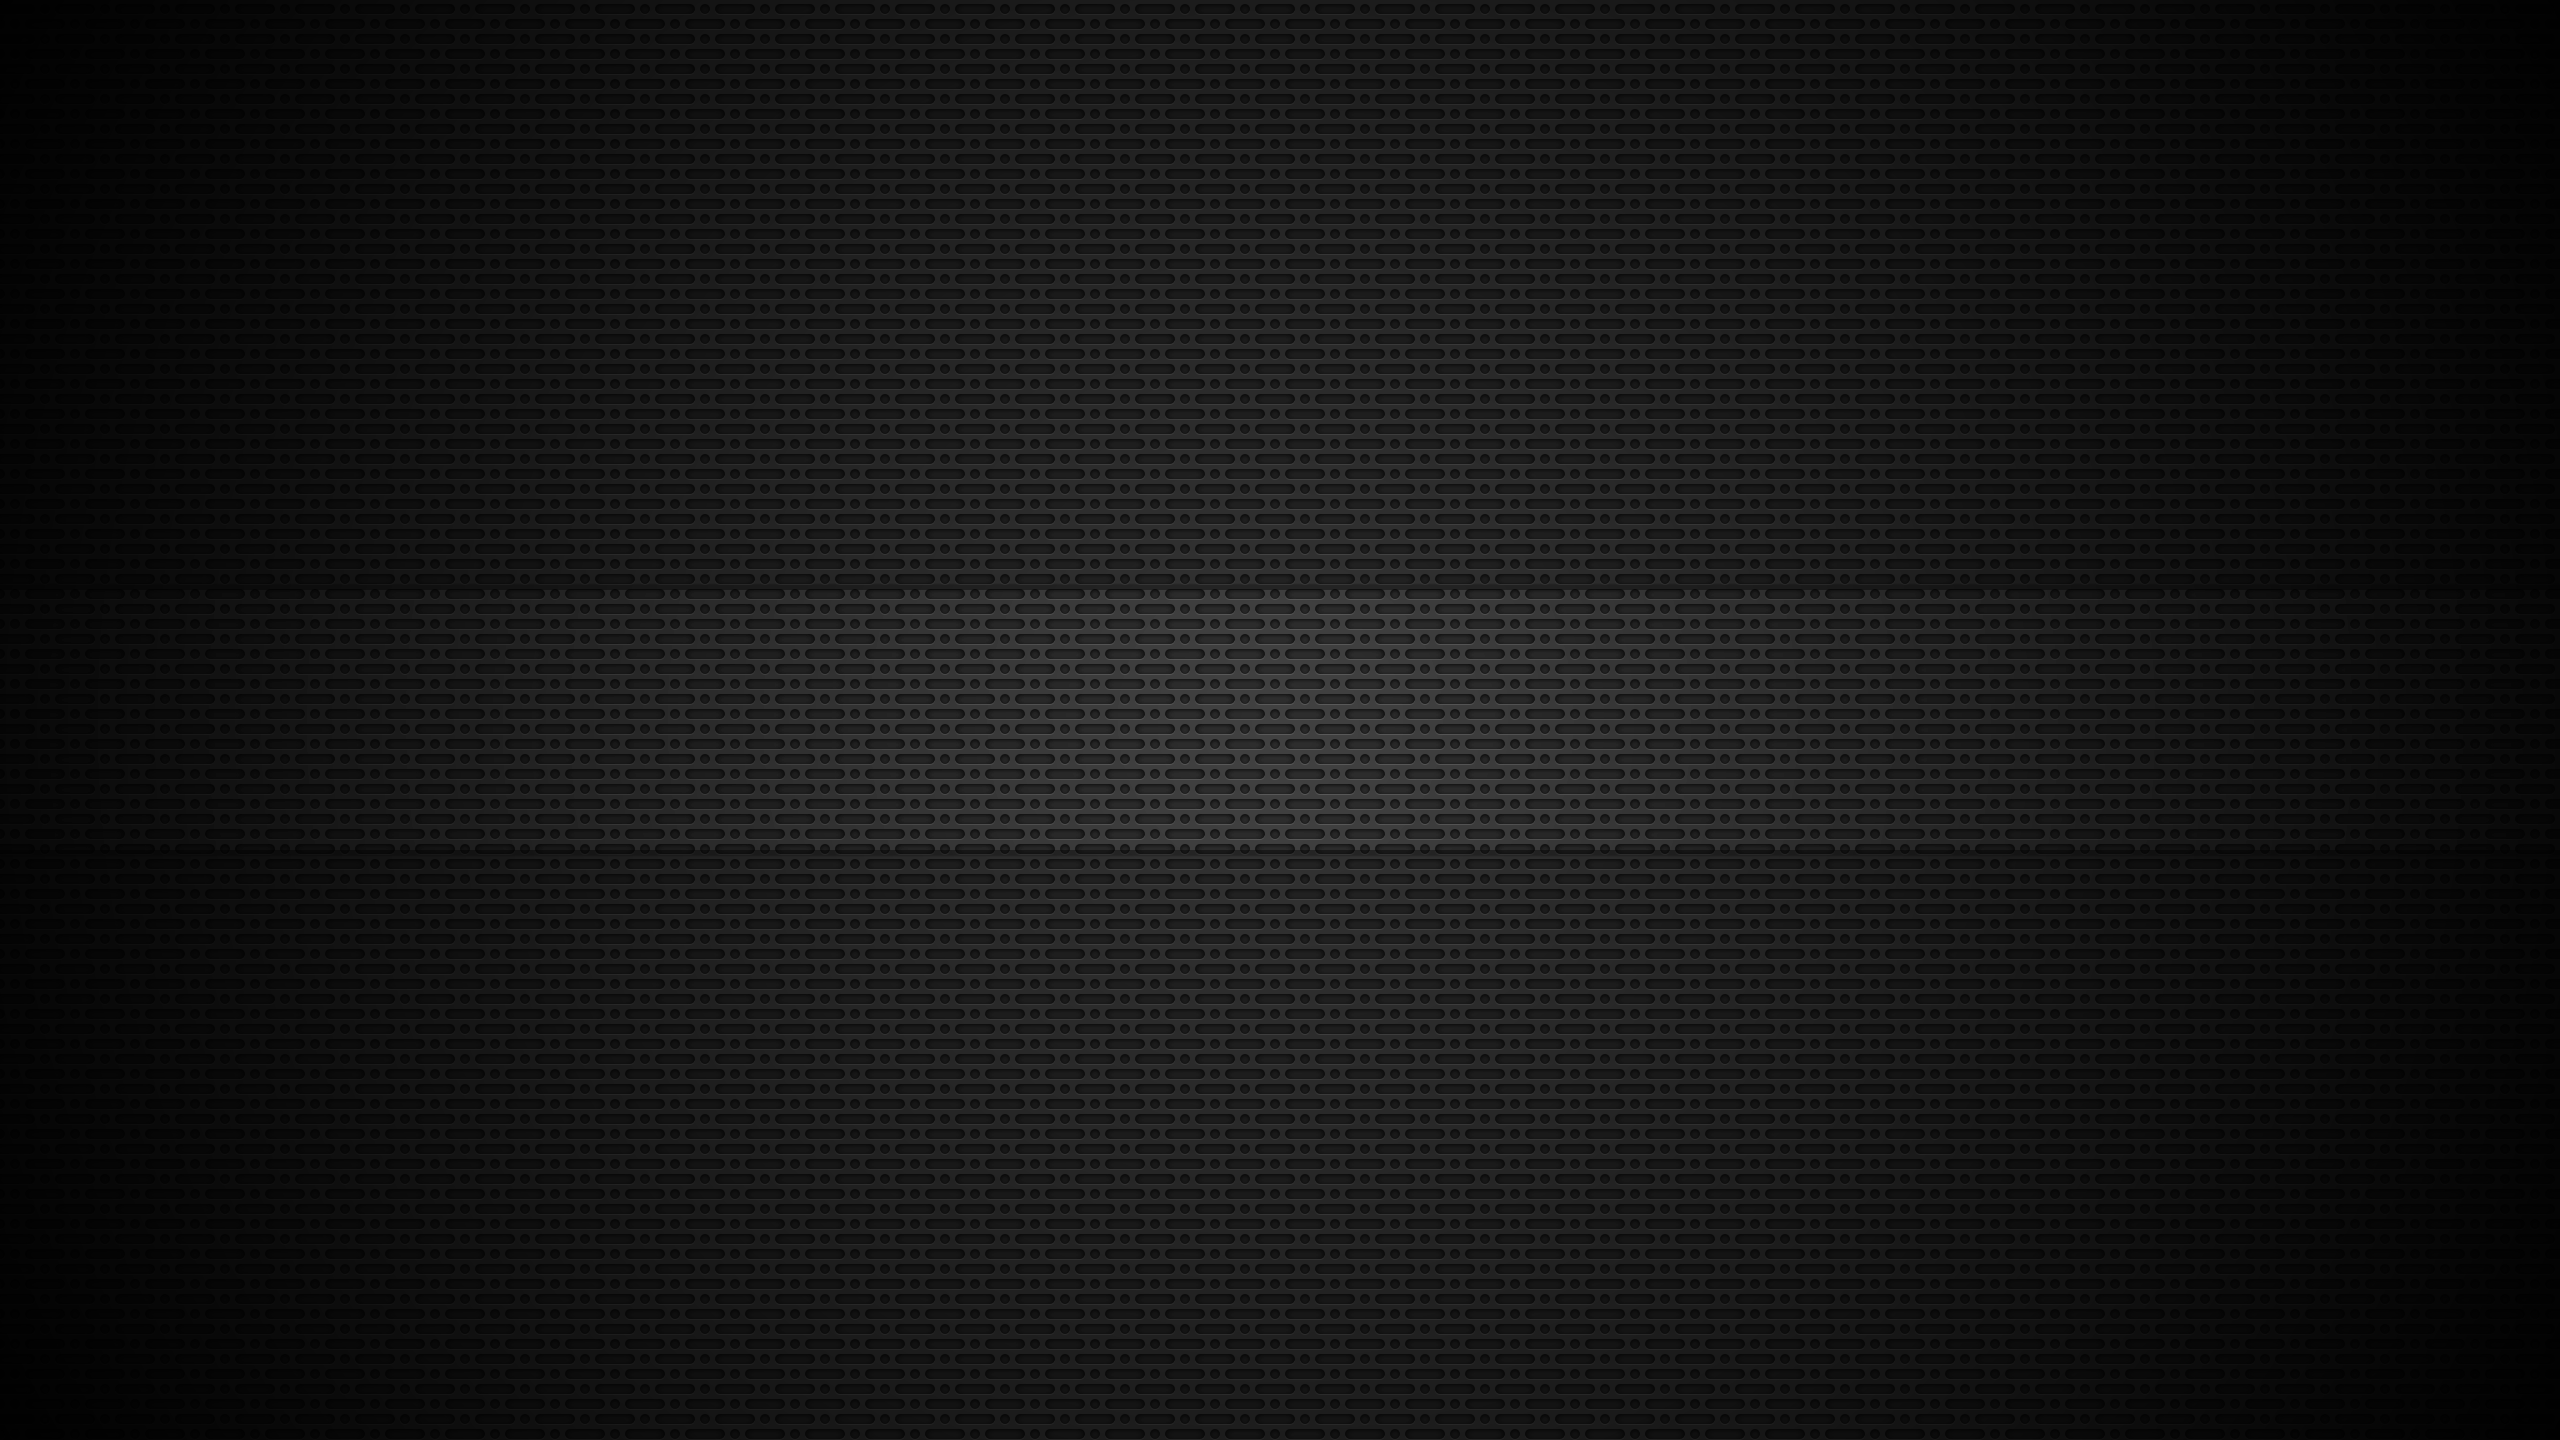 background for youtube channel art